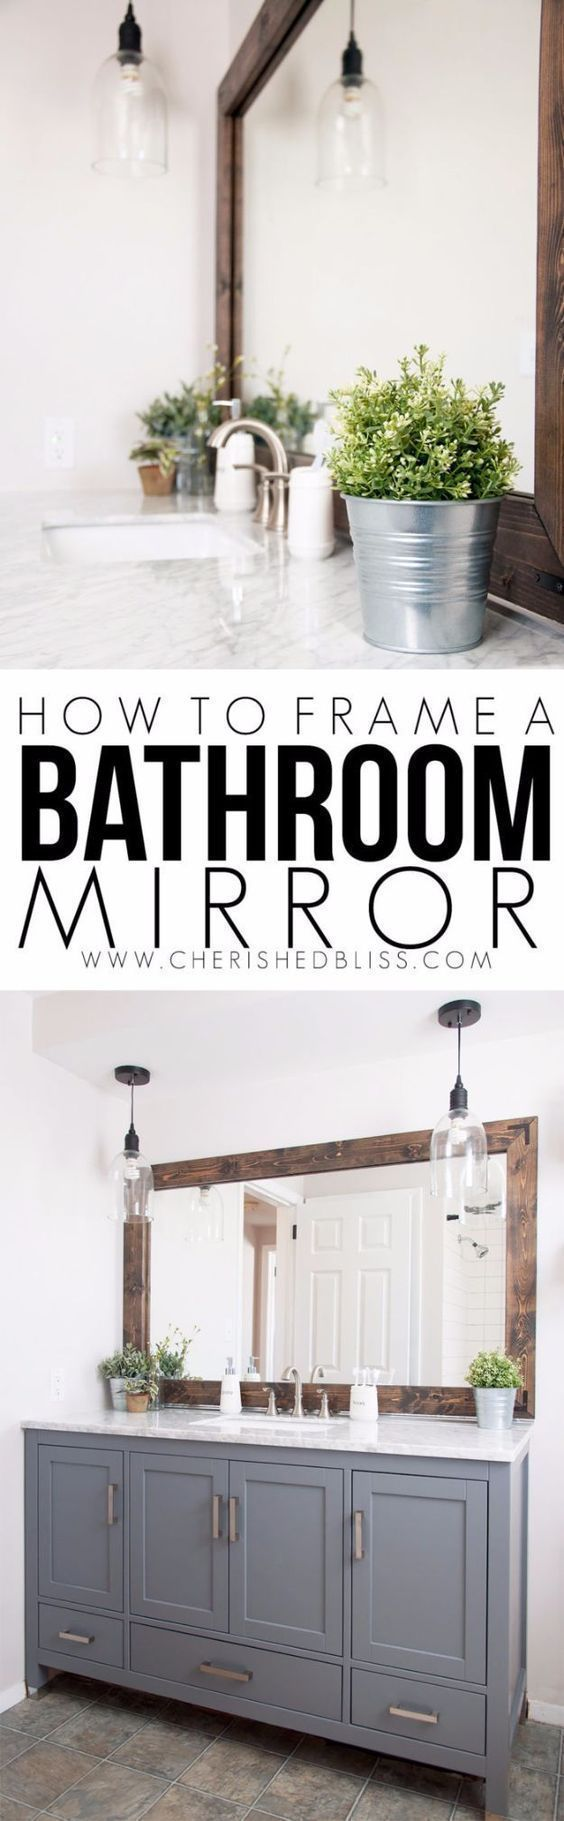 DIY Remodeling Hacks - Frame a Bathroom Mirror - Quick and Easy Home ...